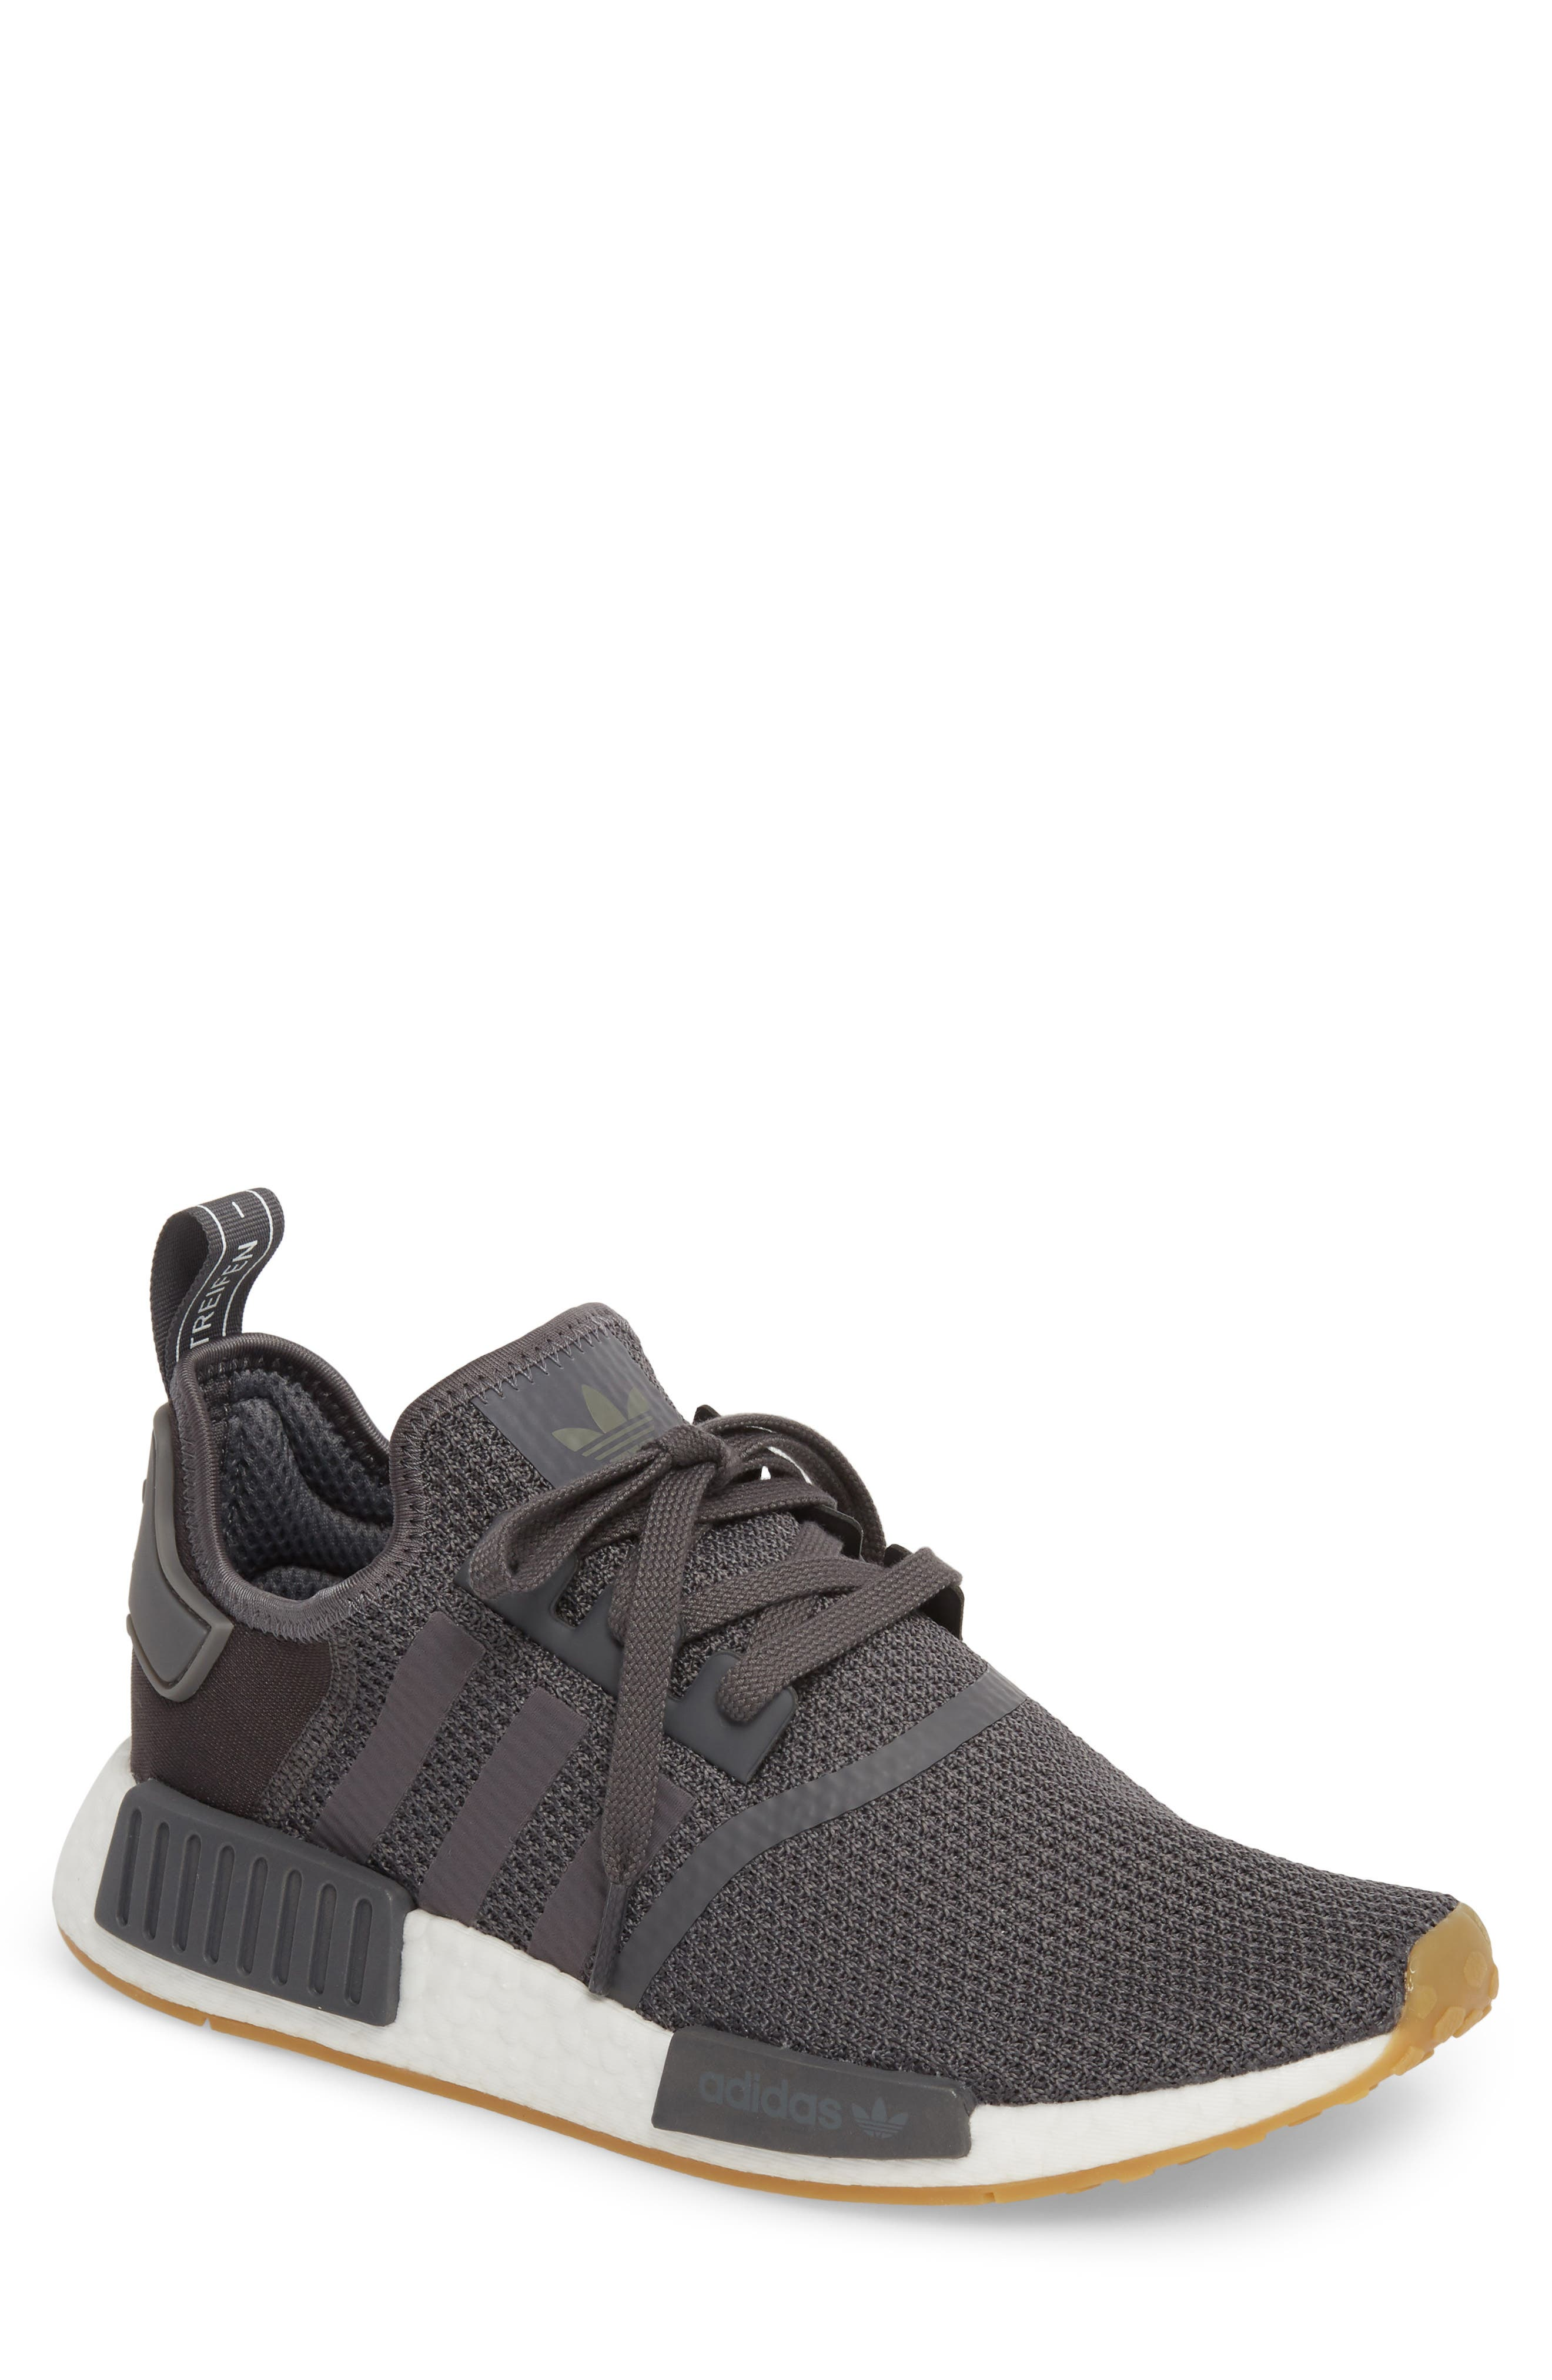 Originals NMD R1 Sneaker,                         Main,                         color, Grey/ Black